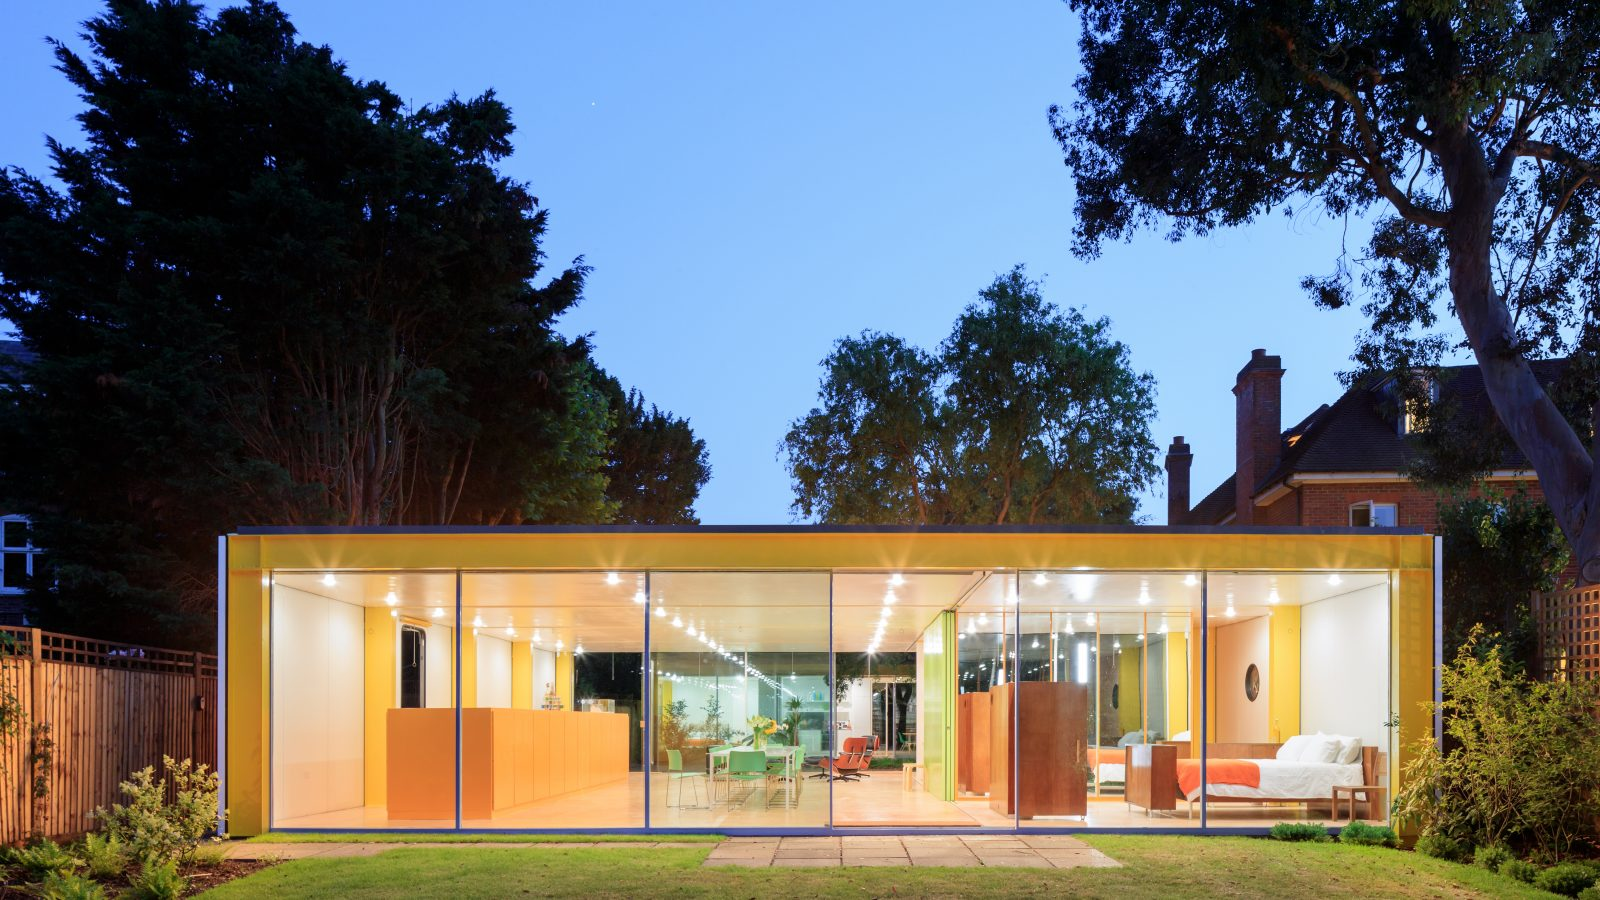 The Wimbledon House, Richard Rogers. Courtesy of the Harvard Graduate School of Design. Image © Iwan Baan.